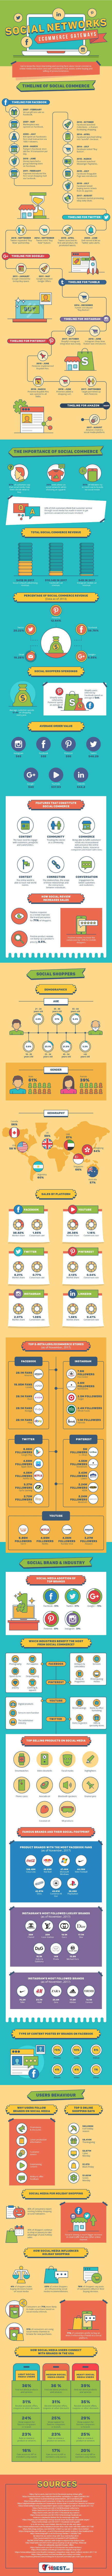 infographie social commerce